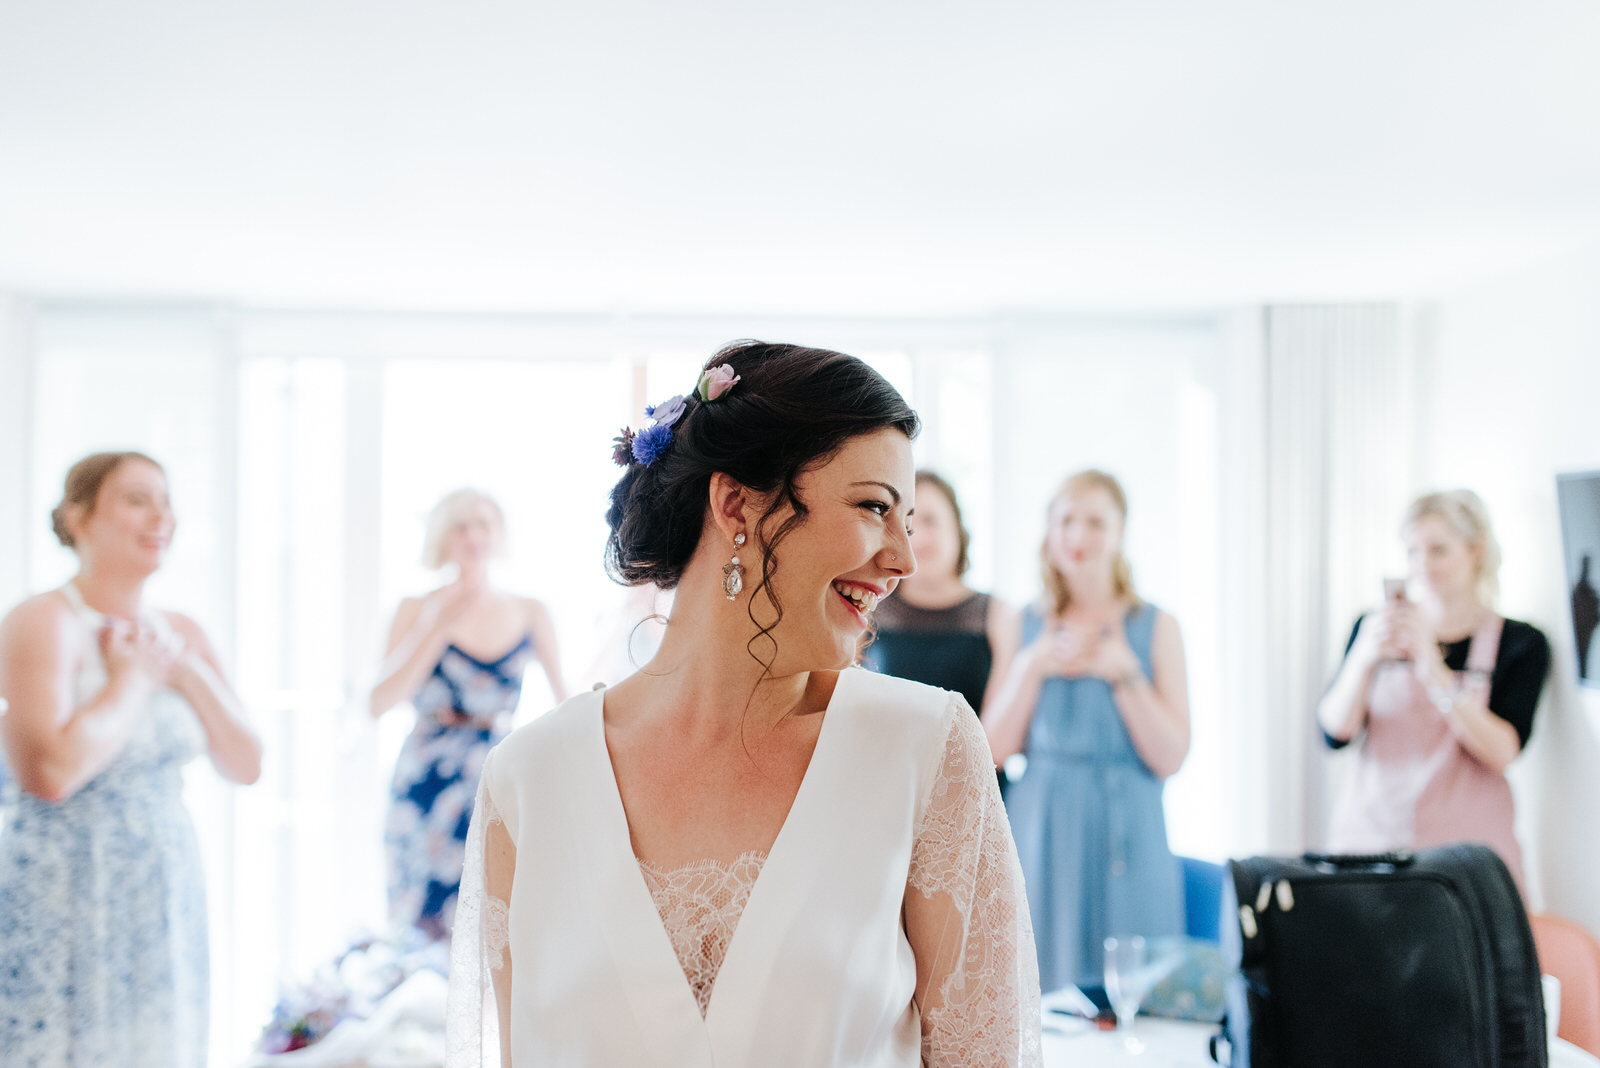 Bride twirls and smiles in her dress in front of bridesmaids